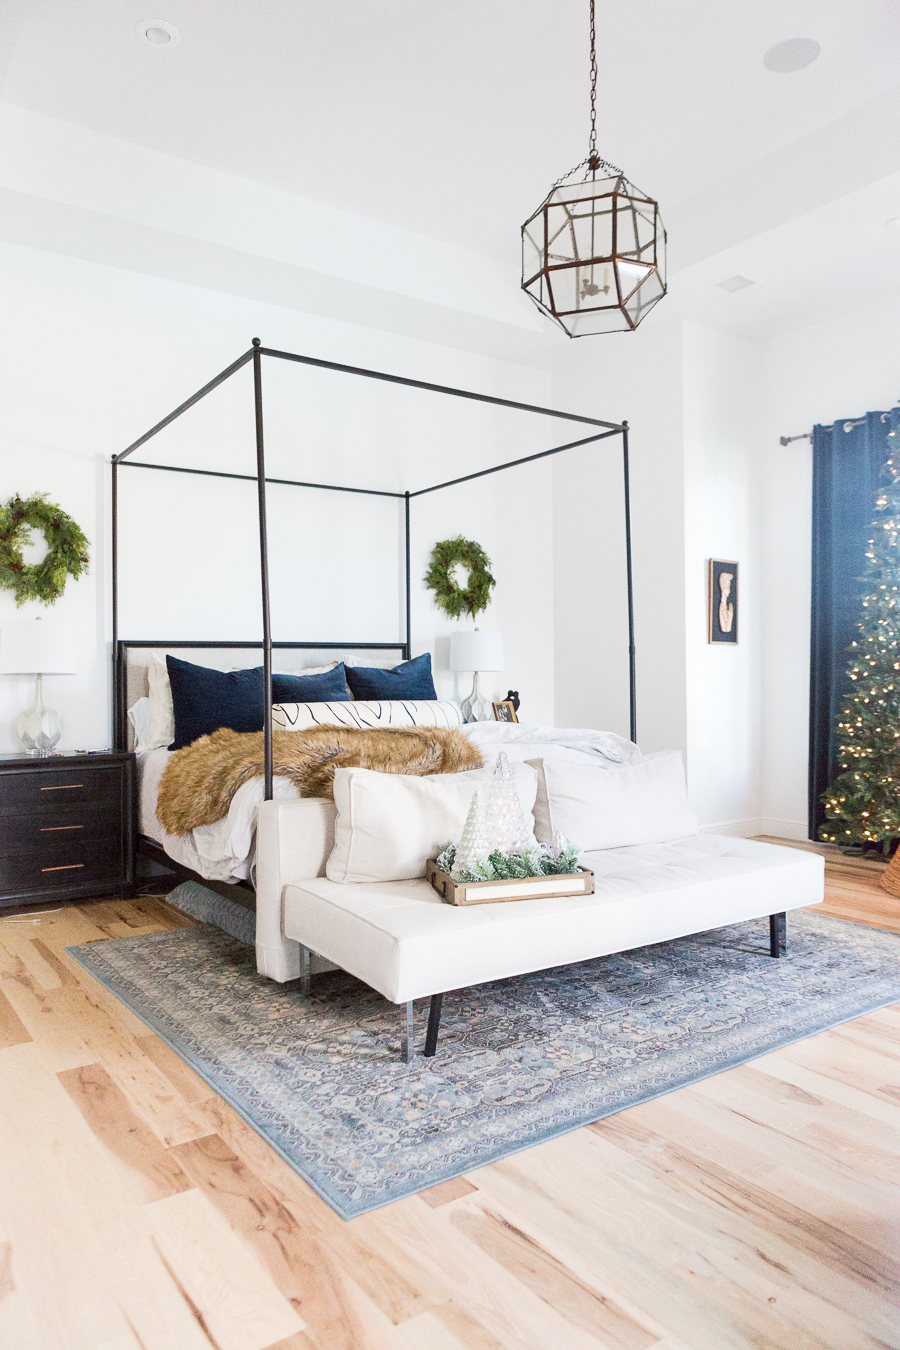 5 Easy Christmas Ideas for Bedrooms  CC and Mike